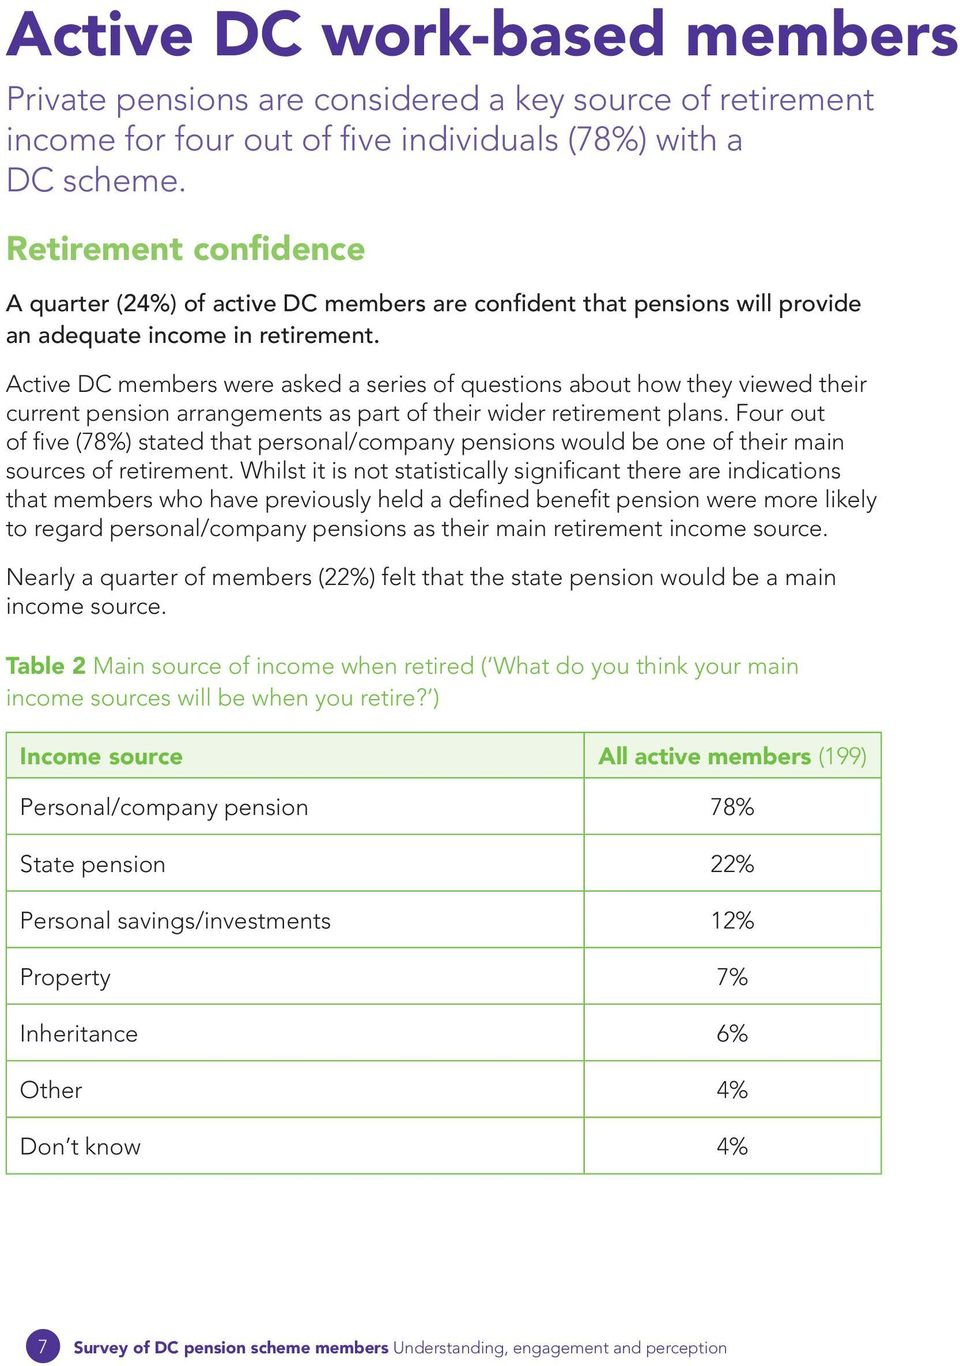 Active DC members were asked a series of questions about how they viewed their current pension arrangements as part of their wider retirement plans.